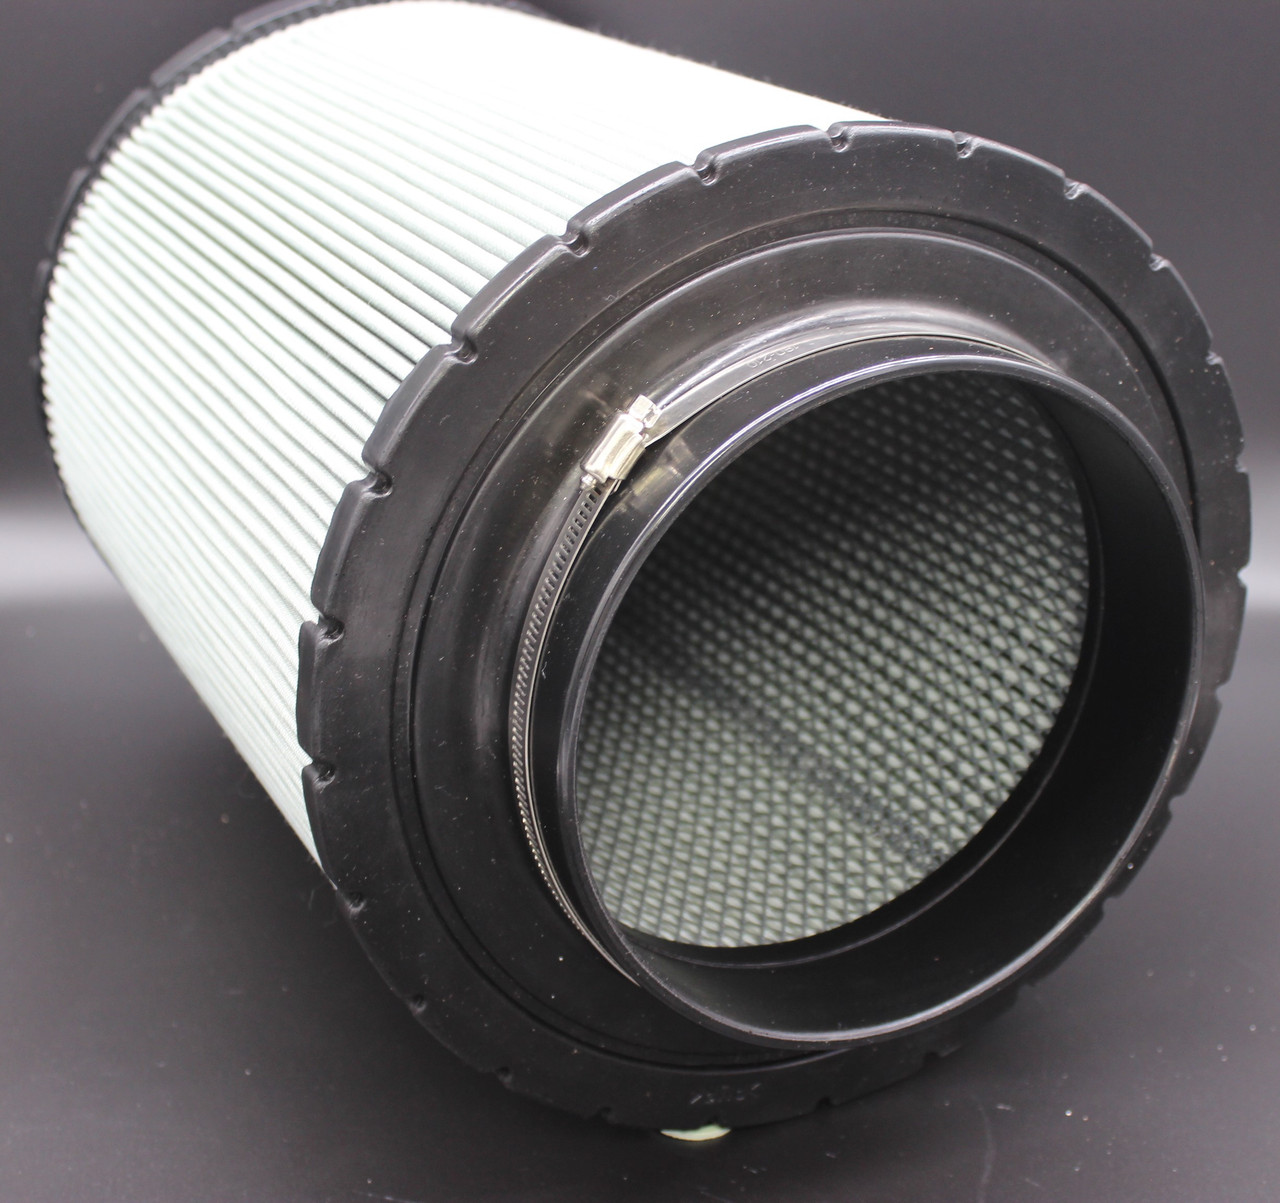 2000 Felt Air Filter 200 Micron. Washable with Soap and water. NO OIL NEEDED